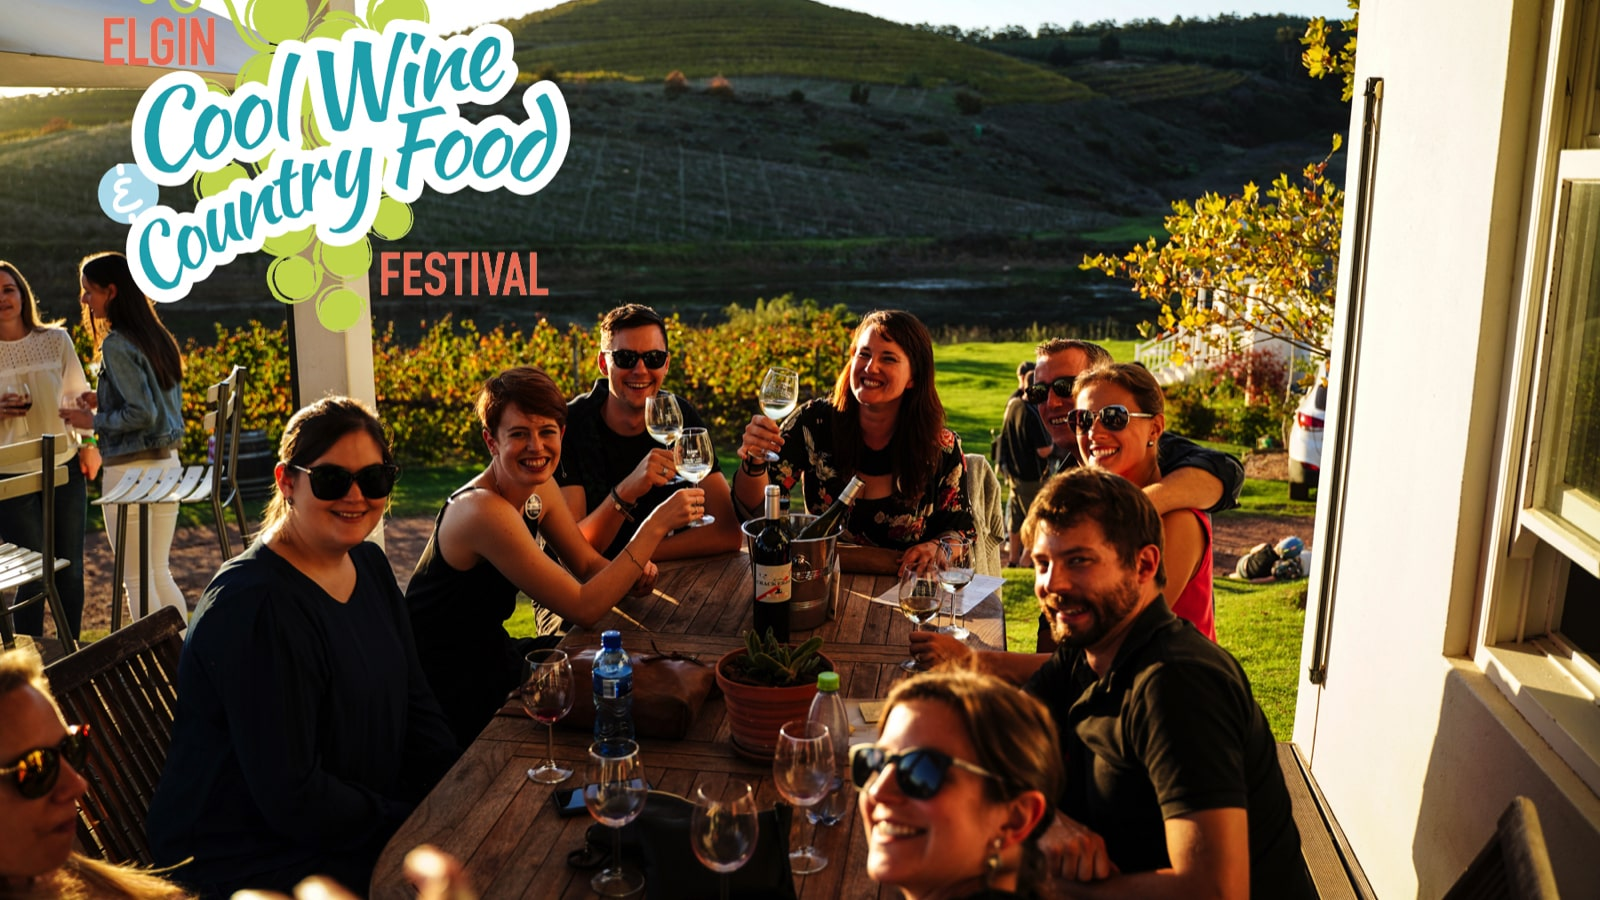 elgin-cool-wine-&-country-food-festival